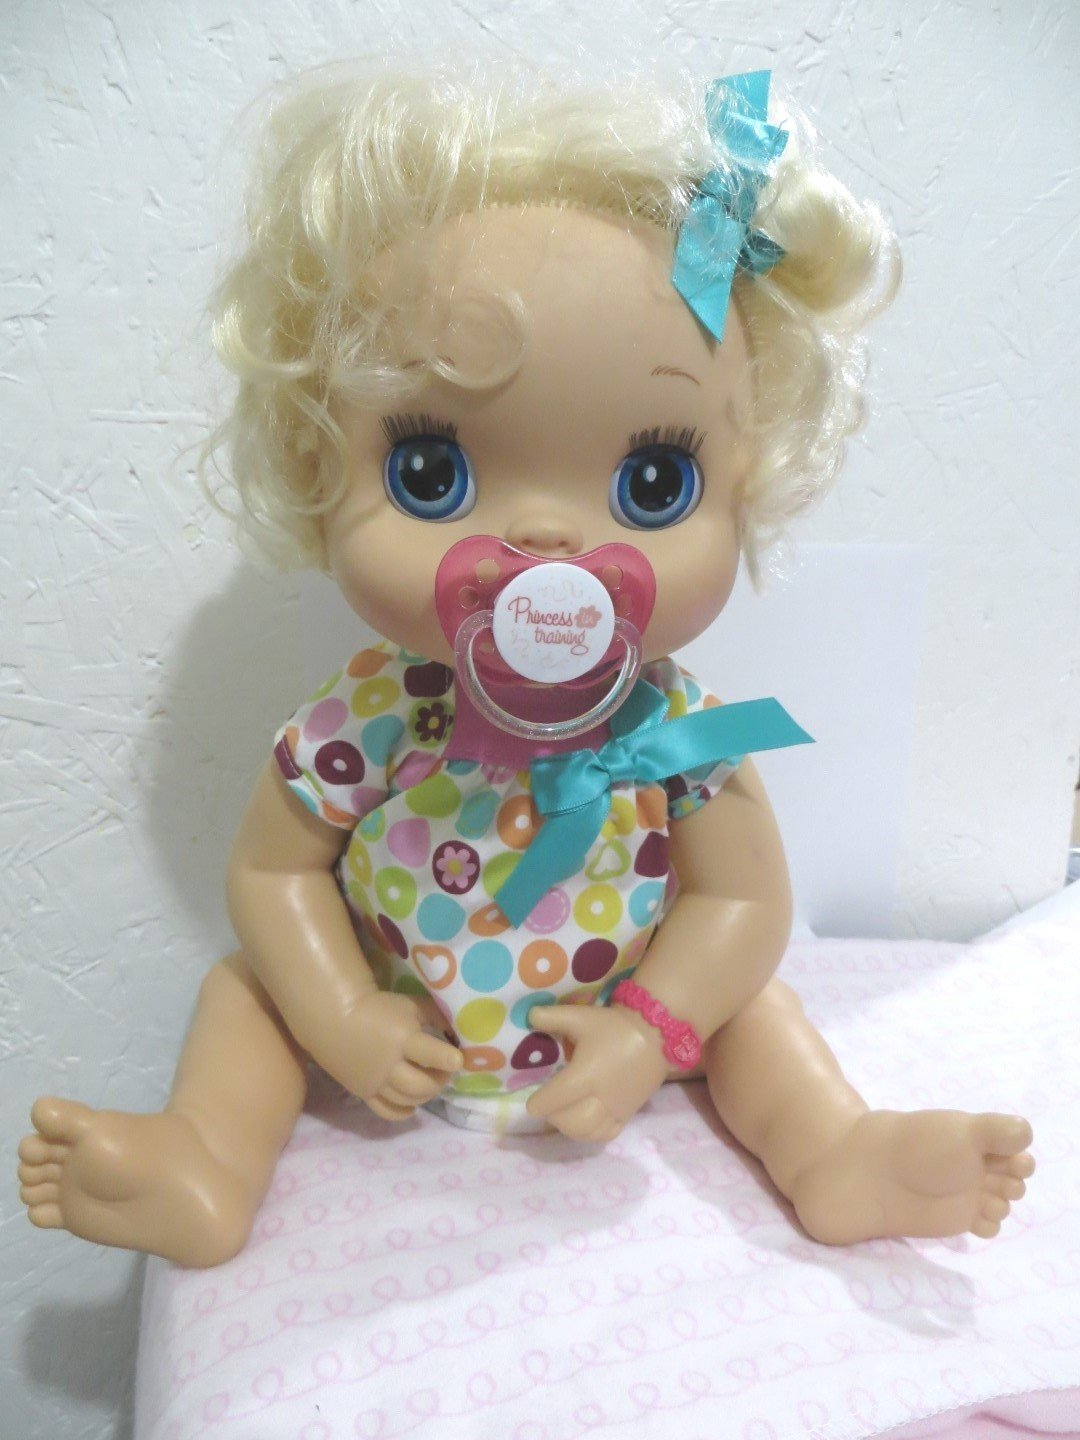 Amazon.com: My Baby Alive Chupete Princess en training- para ...